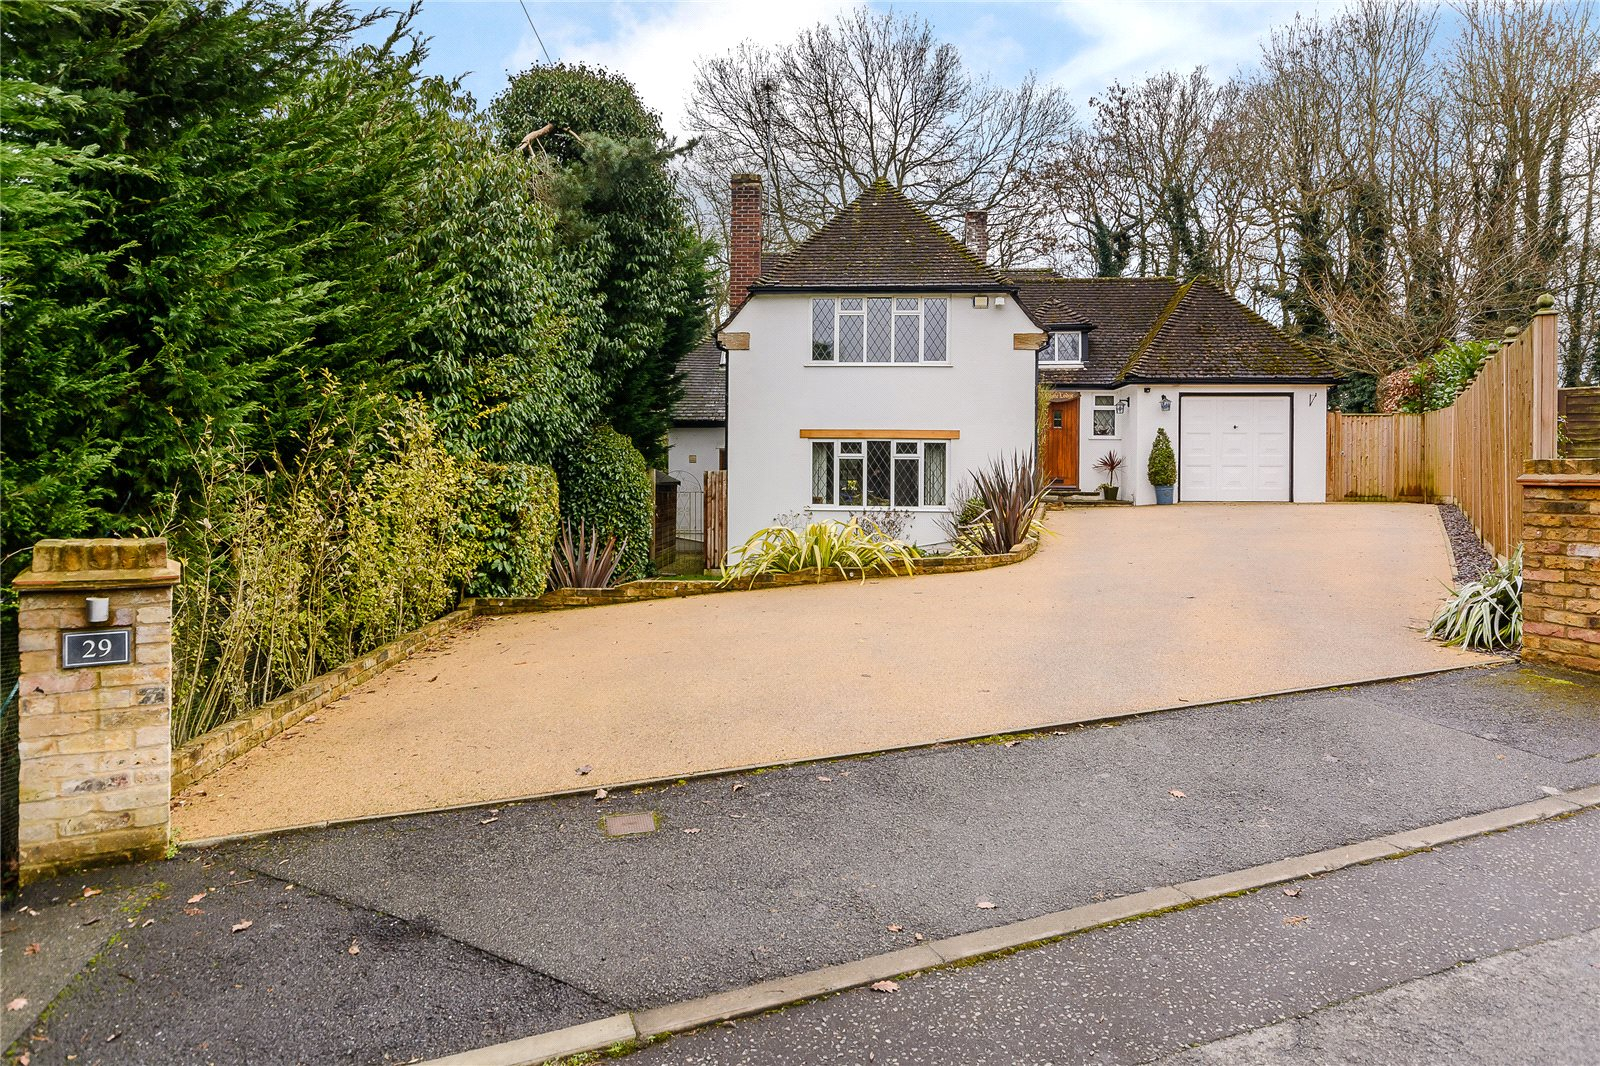 Single Family Home for Sale at Howards Wood Drive, Gerrards Cross, Buckinghamshire, SL9 Gerrards Cross, England